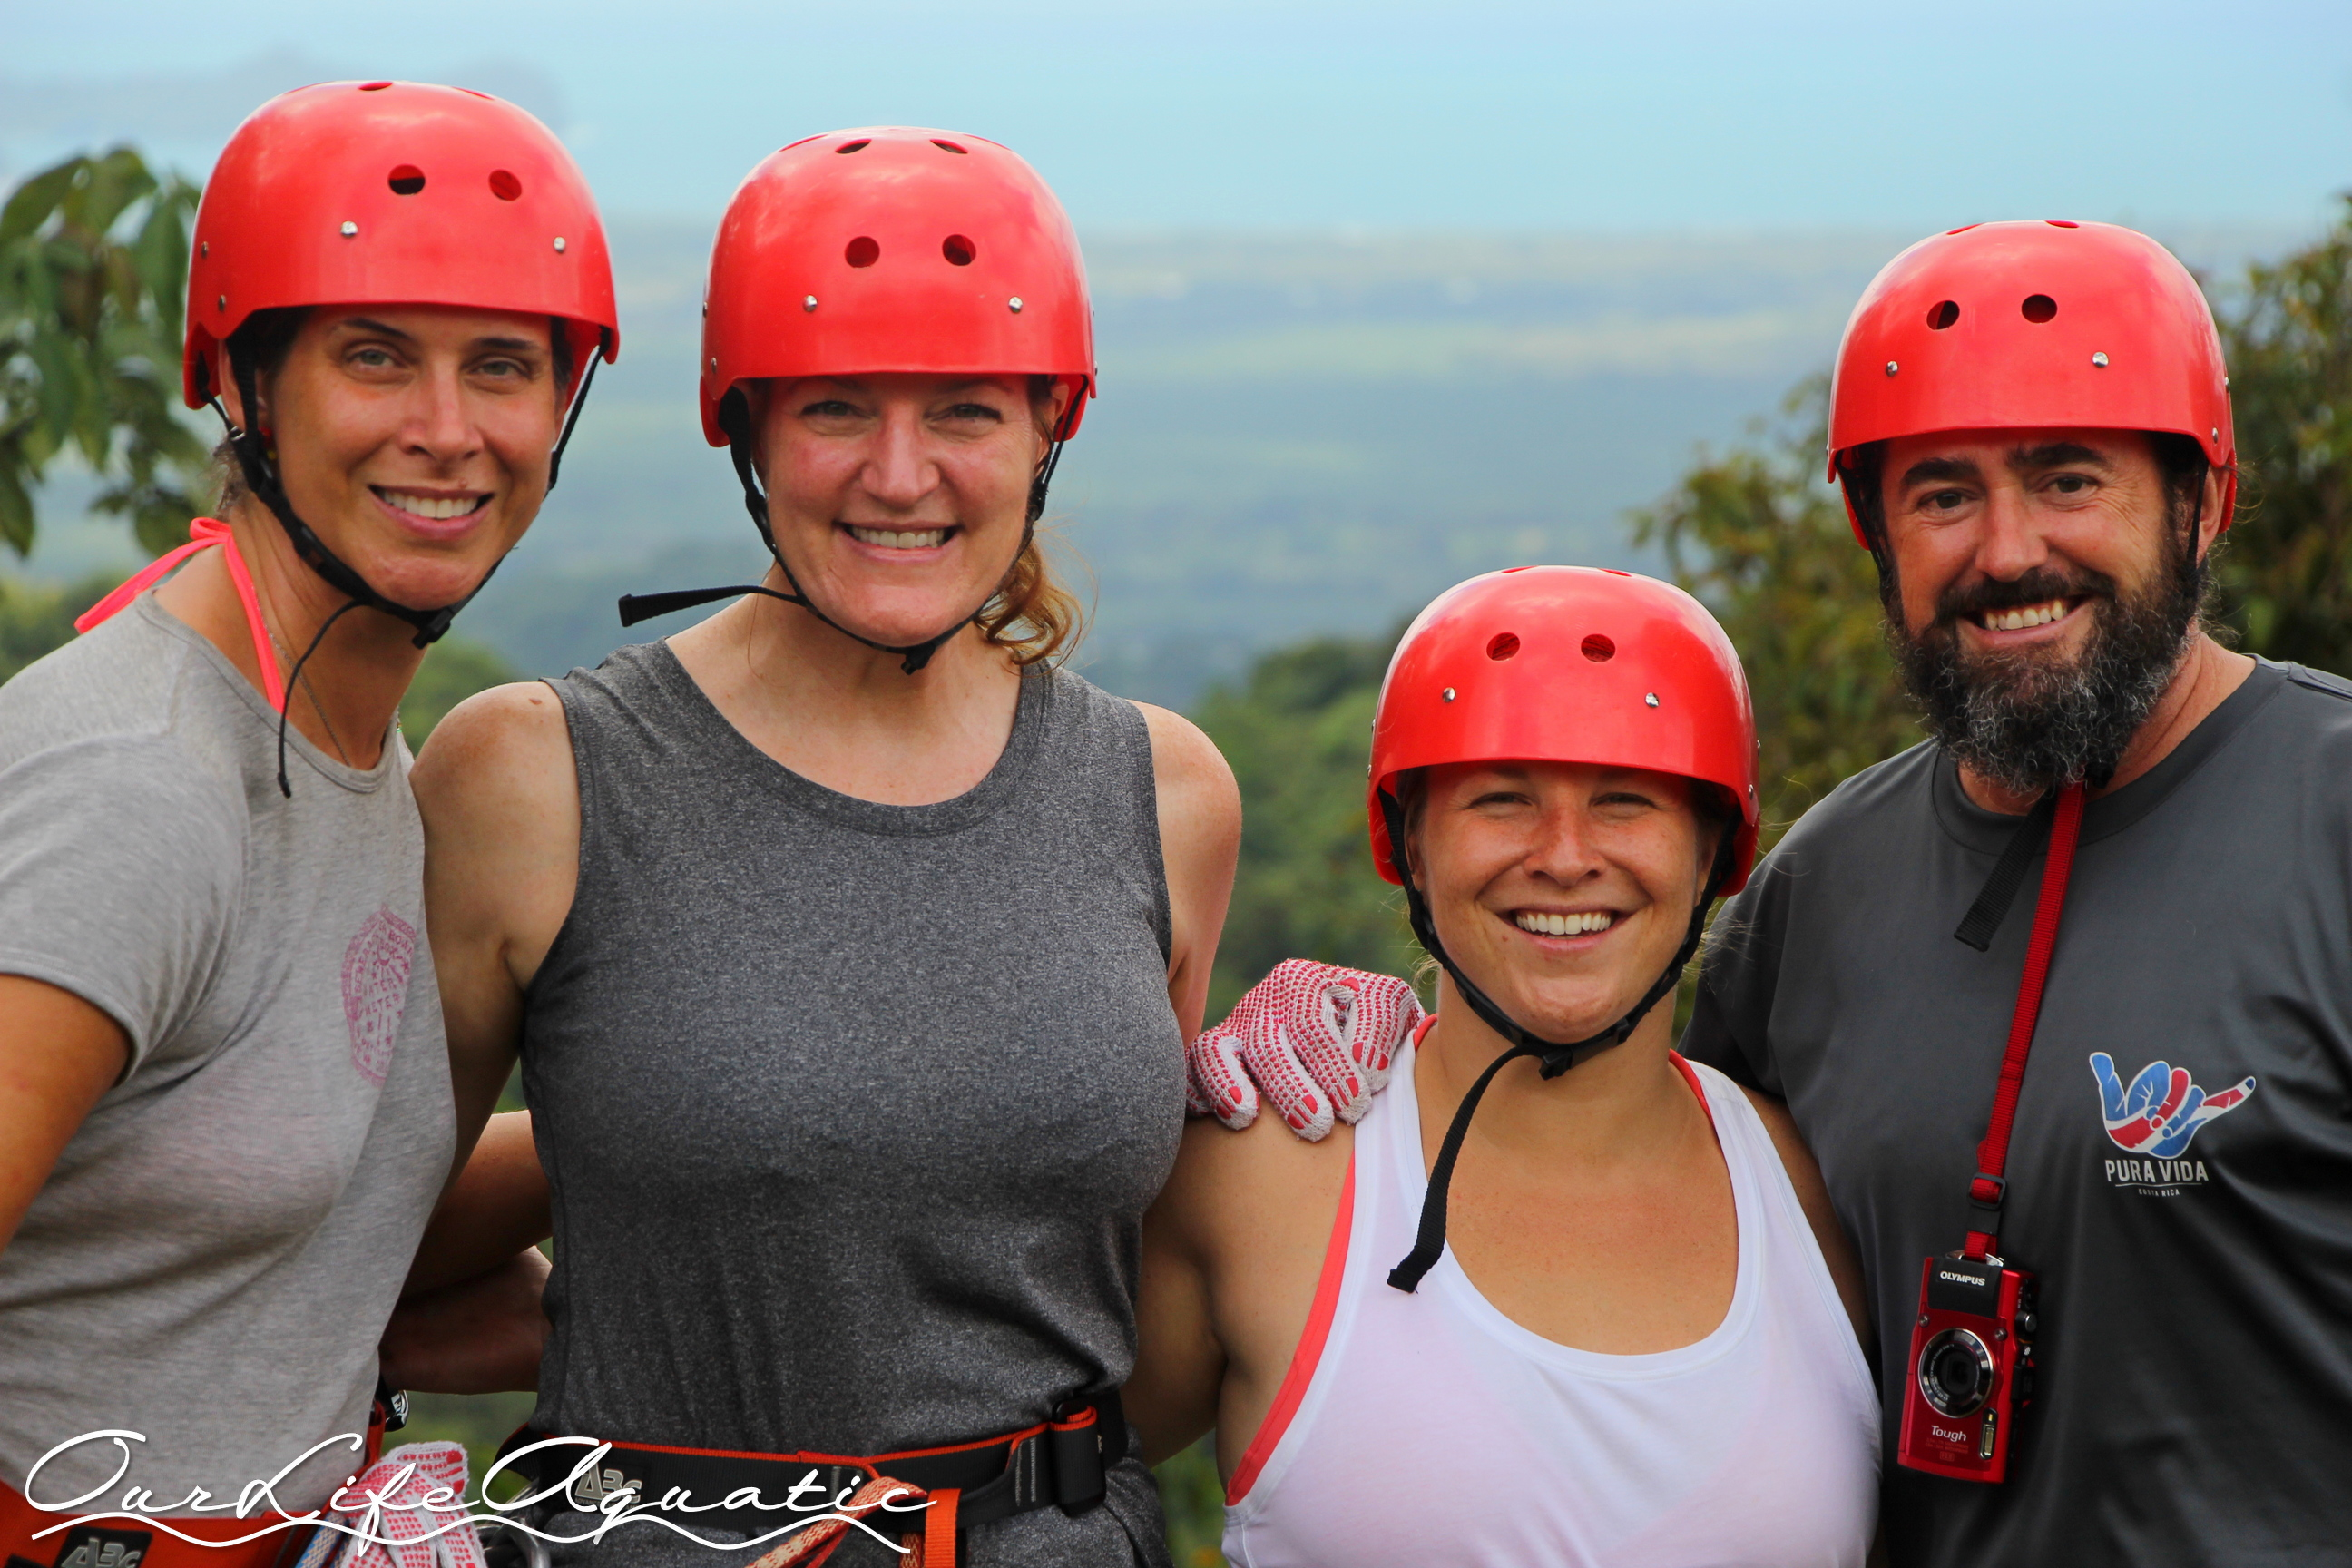 Ready for the Zipline with Michelle and Ashley